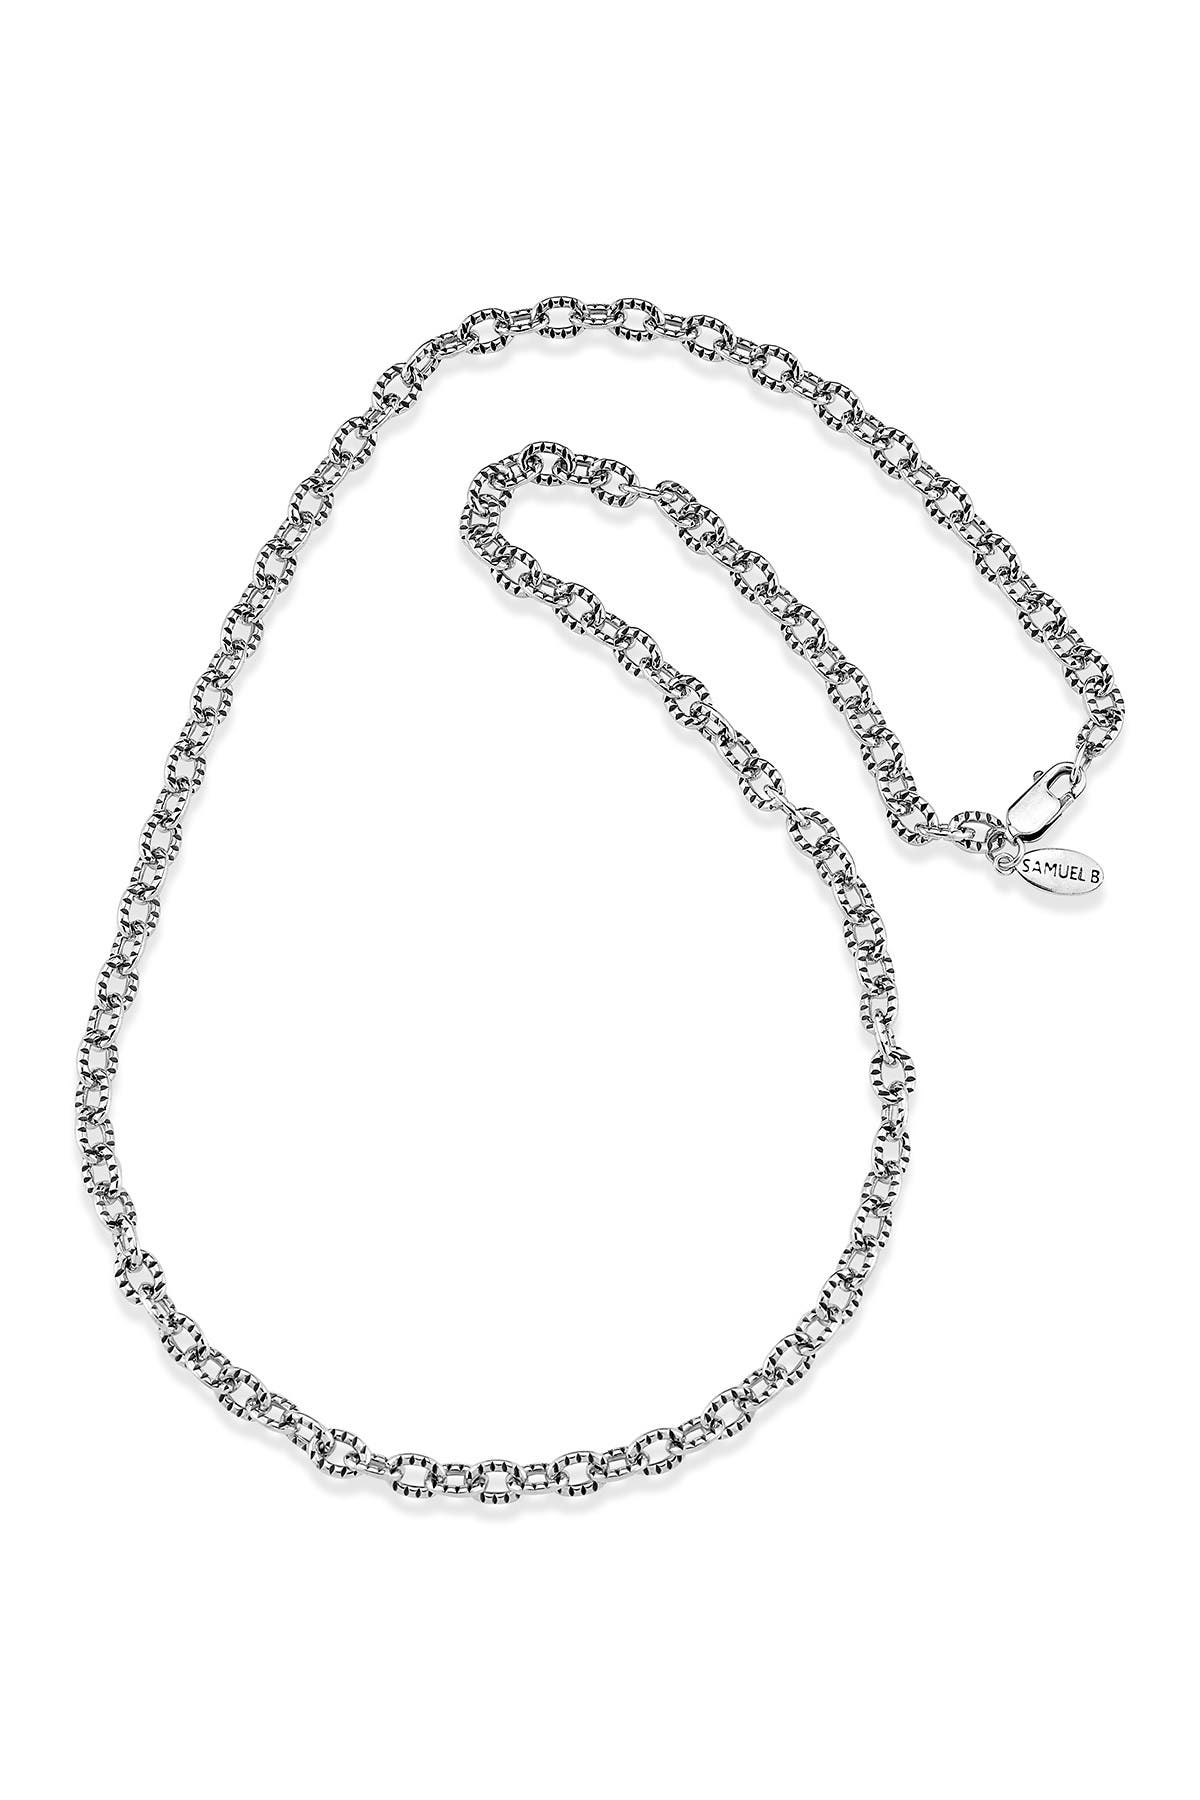 Samuel B Jewelry Sterling Silver Textured Cable Chain Necklace Nordstrom Rack Jewelry designs as well as many other wonderful designers. samuel b jewelry sterling silver textured cable chain necklace nordstrom rack